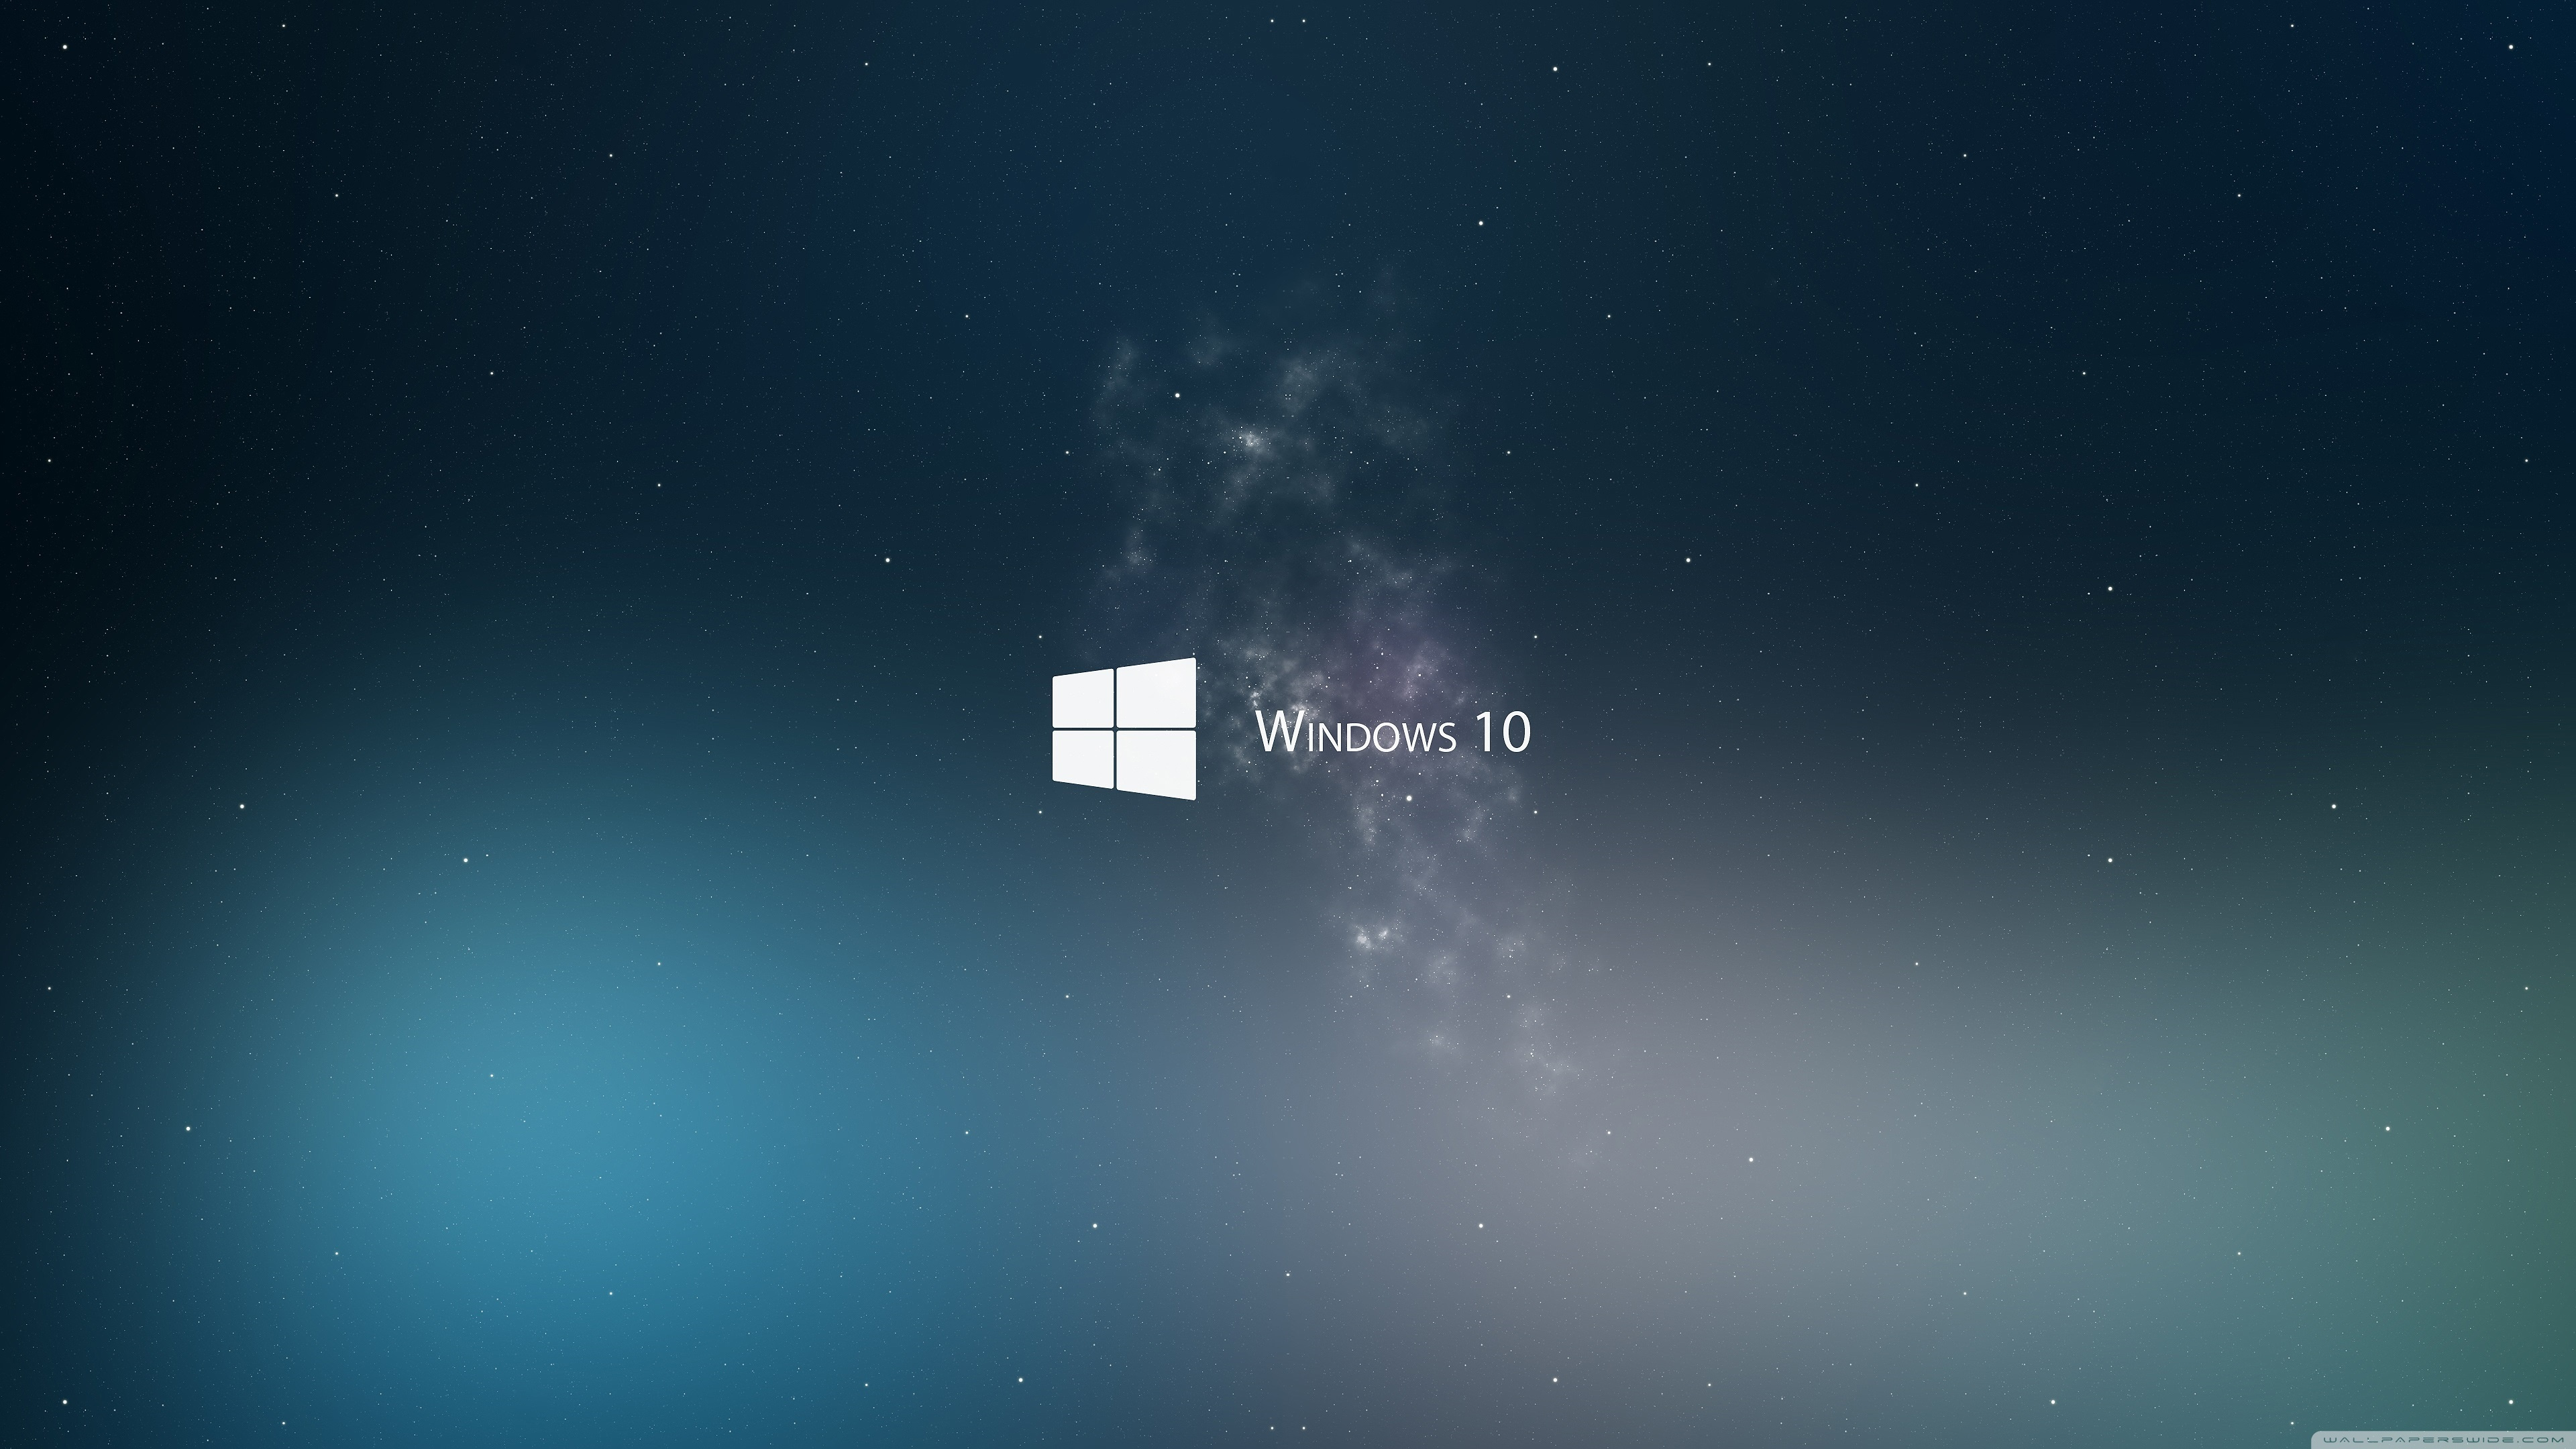 Hd Wallpapers For Windows